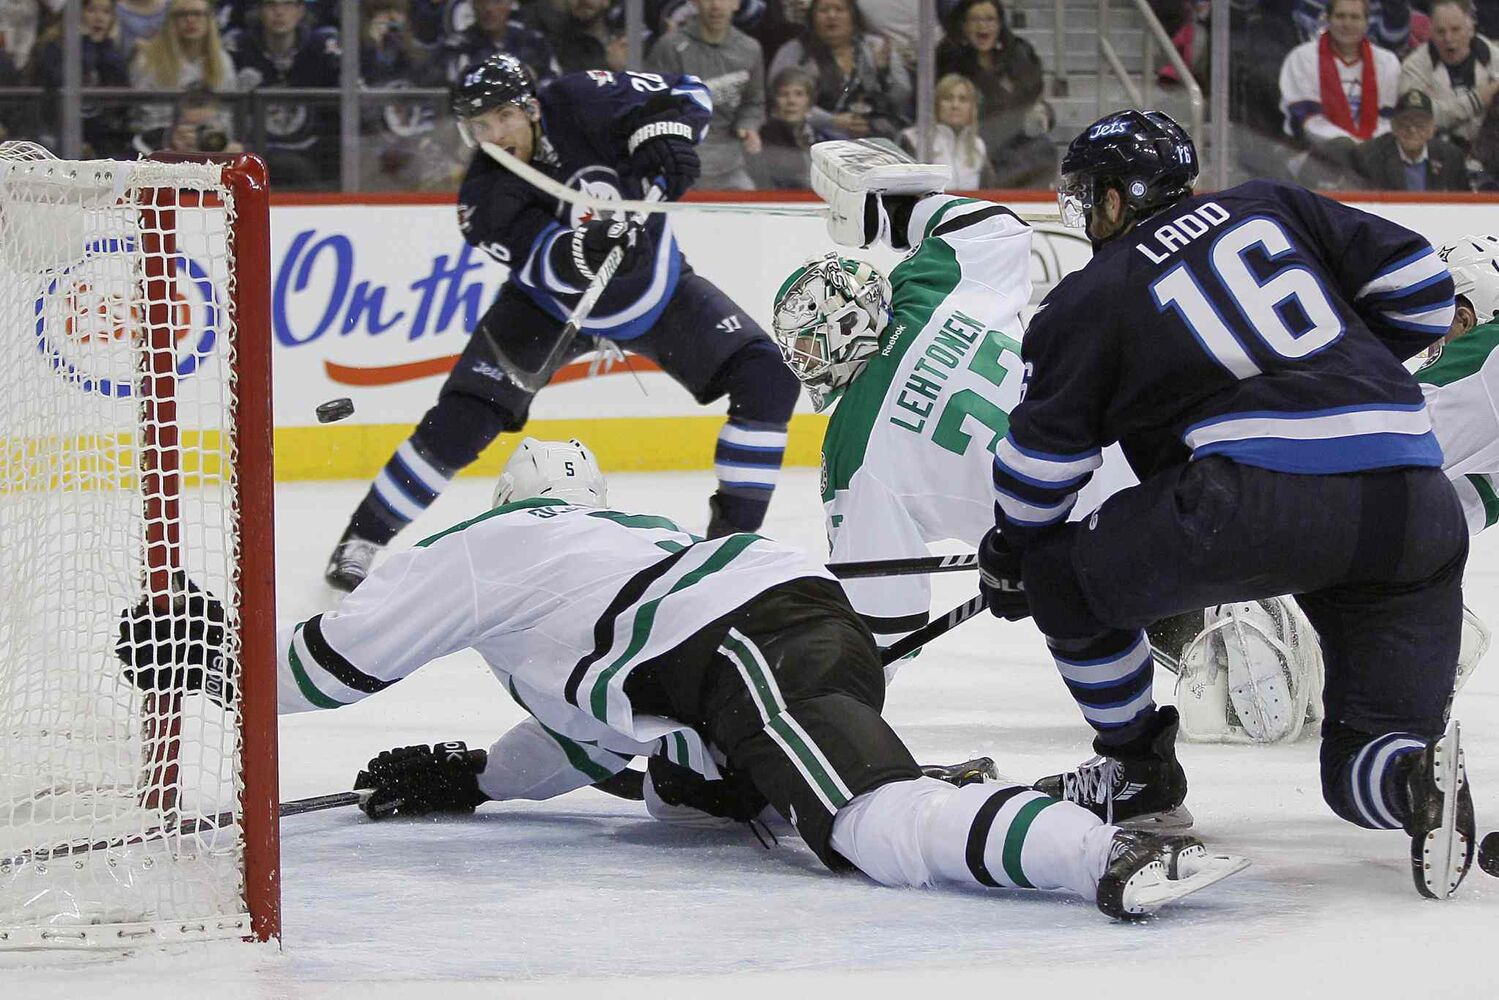 Blake Wheeler (top) puts the puck past Jamie Oleksiak (bottom) and goaltender Kari Lehtonen (centre right) as Andrew Ladd looks on during the second period.